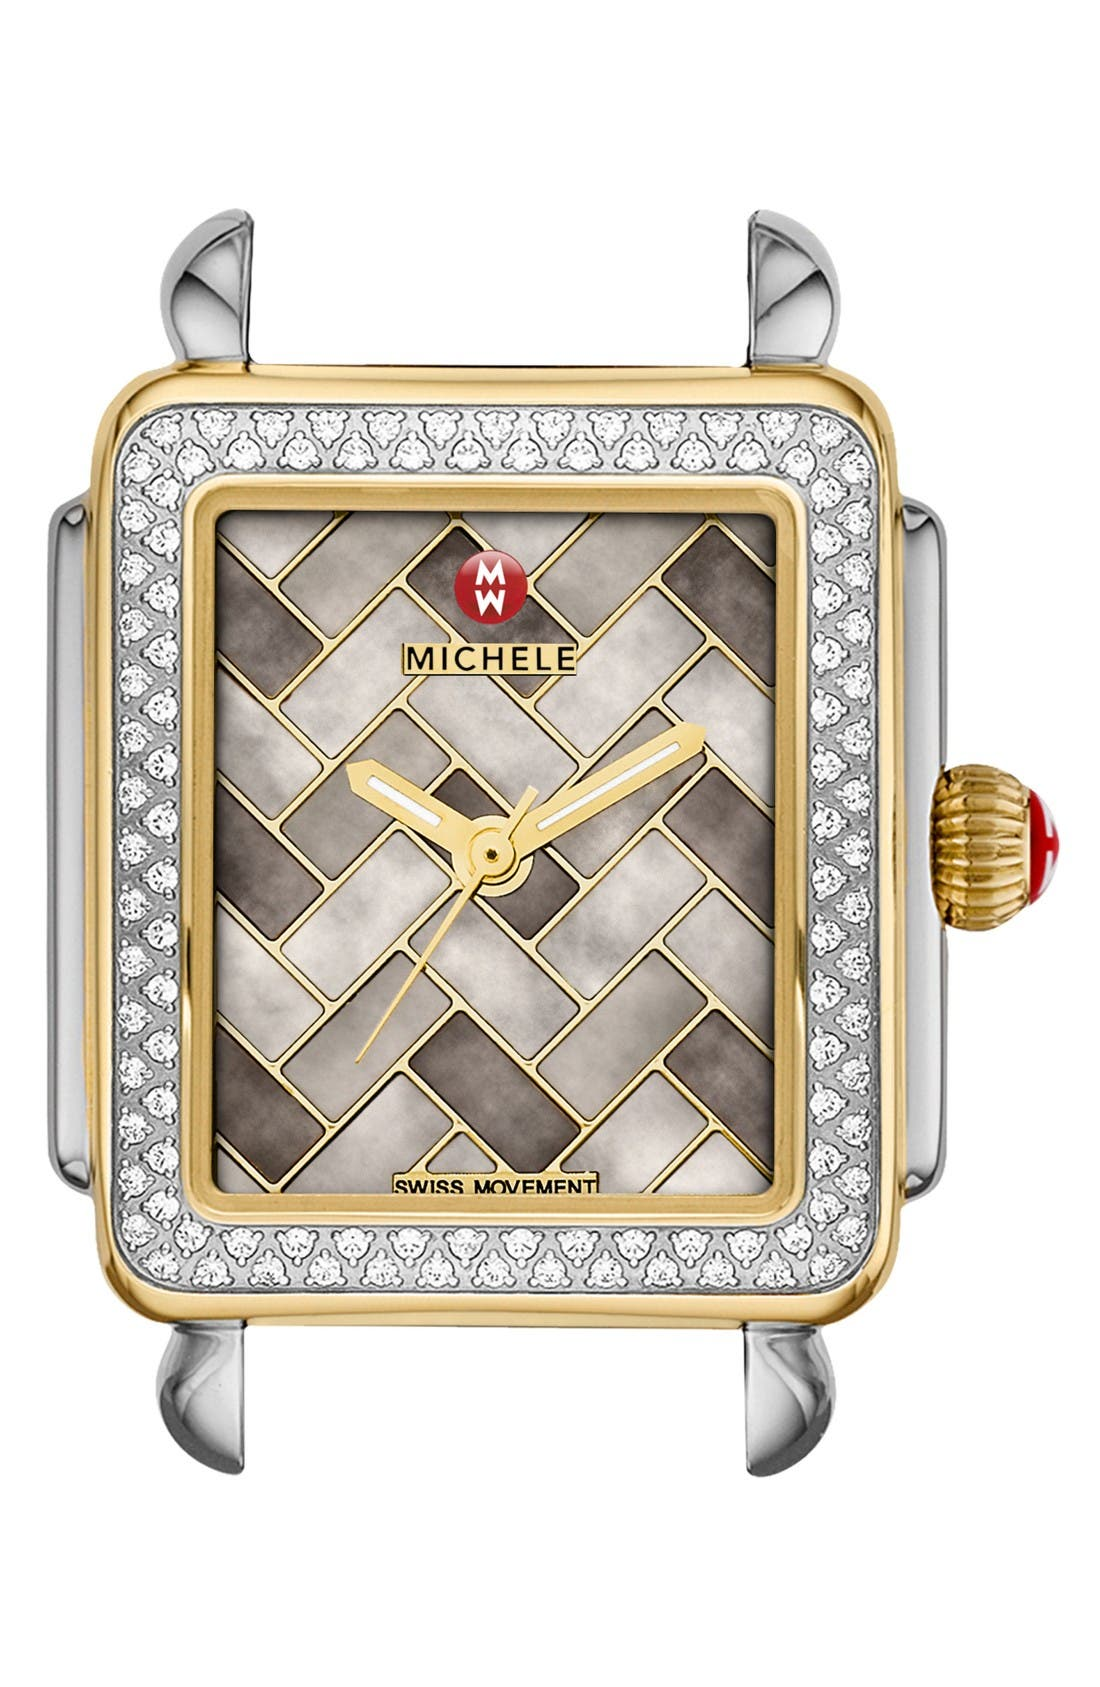 MICHELE Deco 16 Diamond Two-Tone Watch Case, 29mm x 31mm